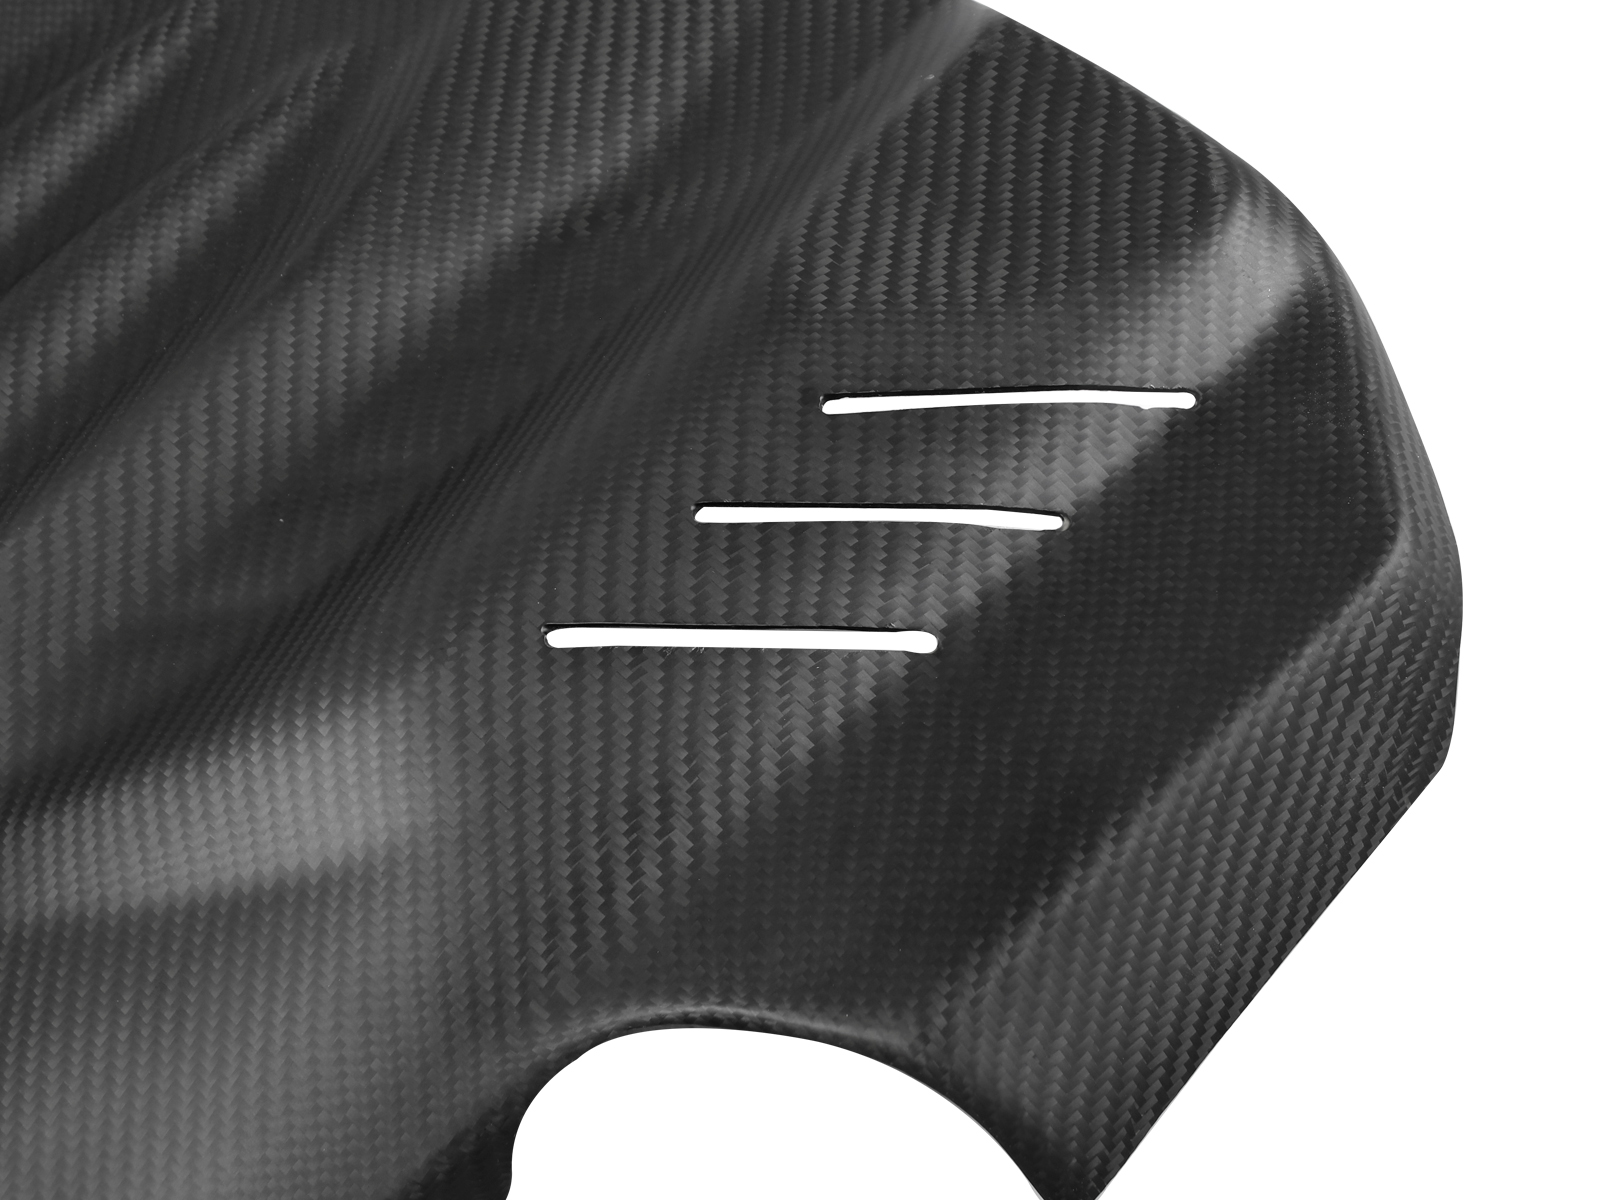 BMW M5 matte engine cover 2